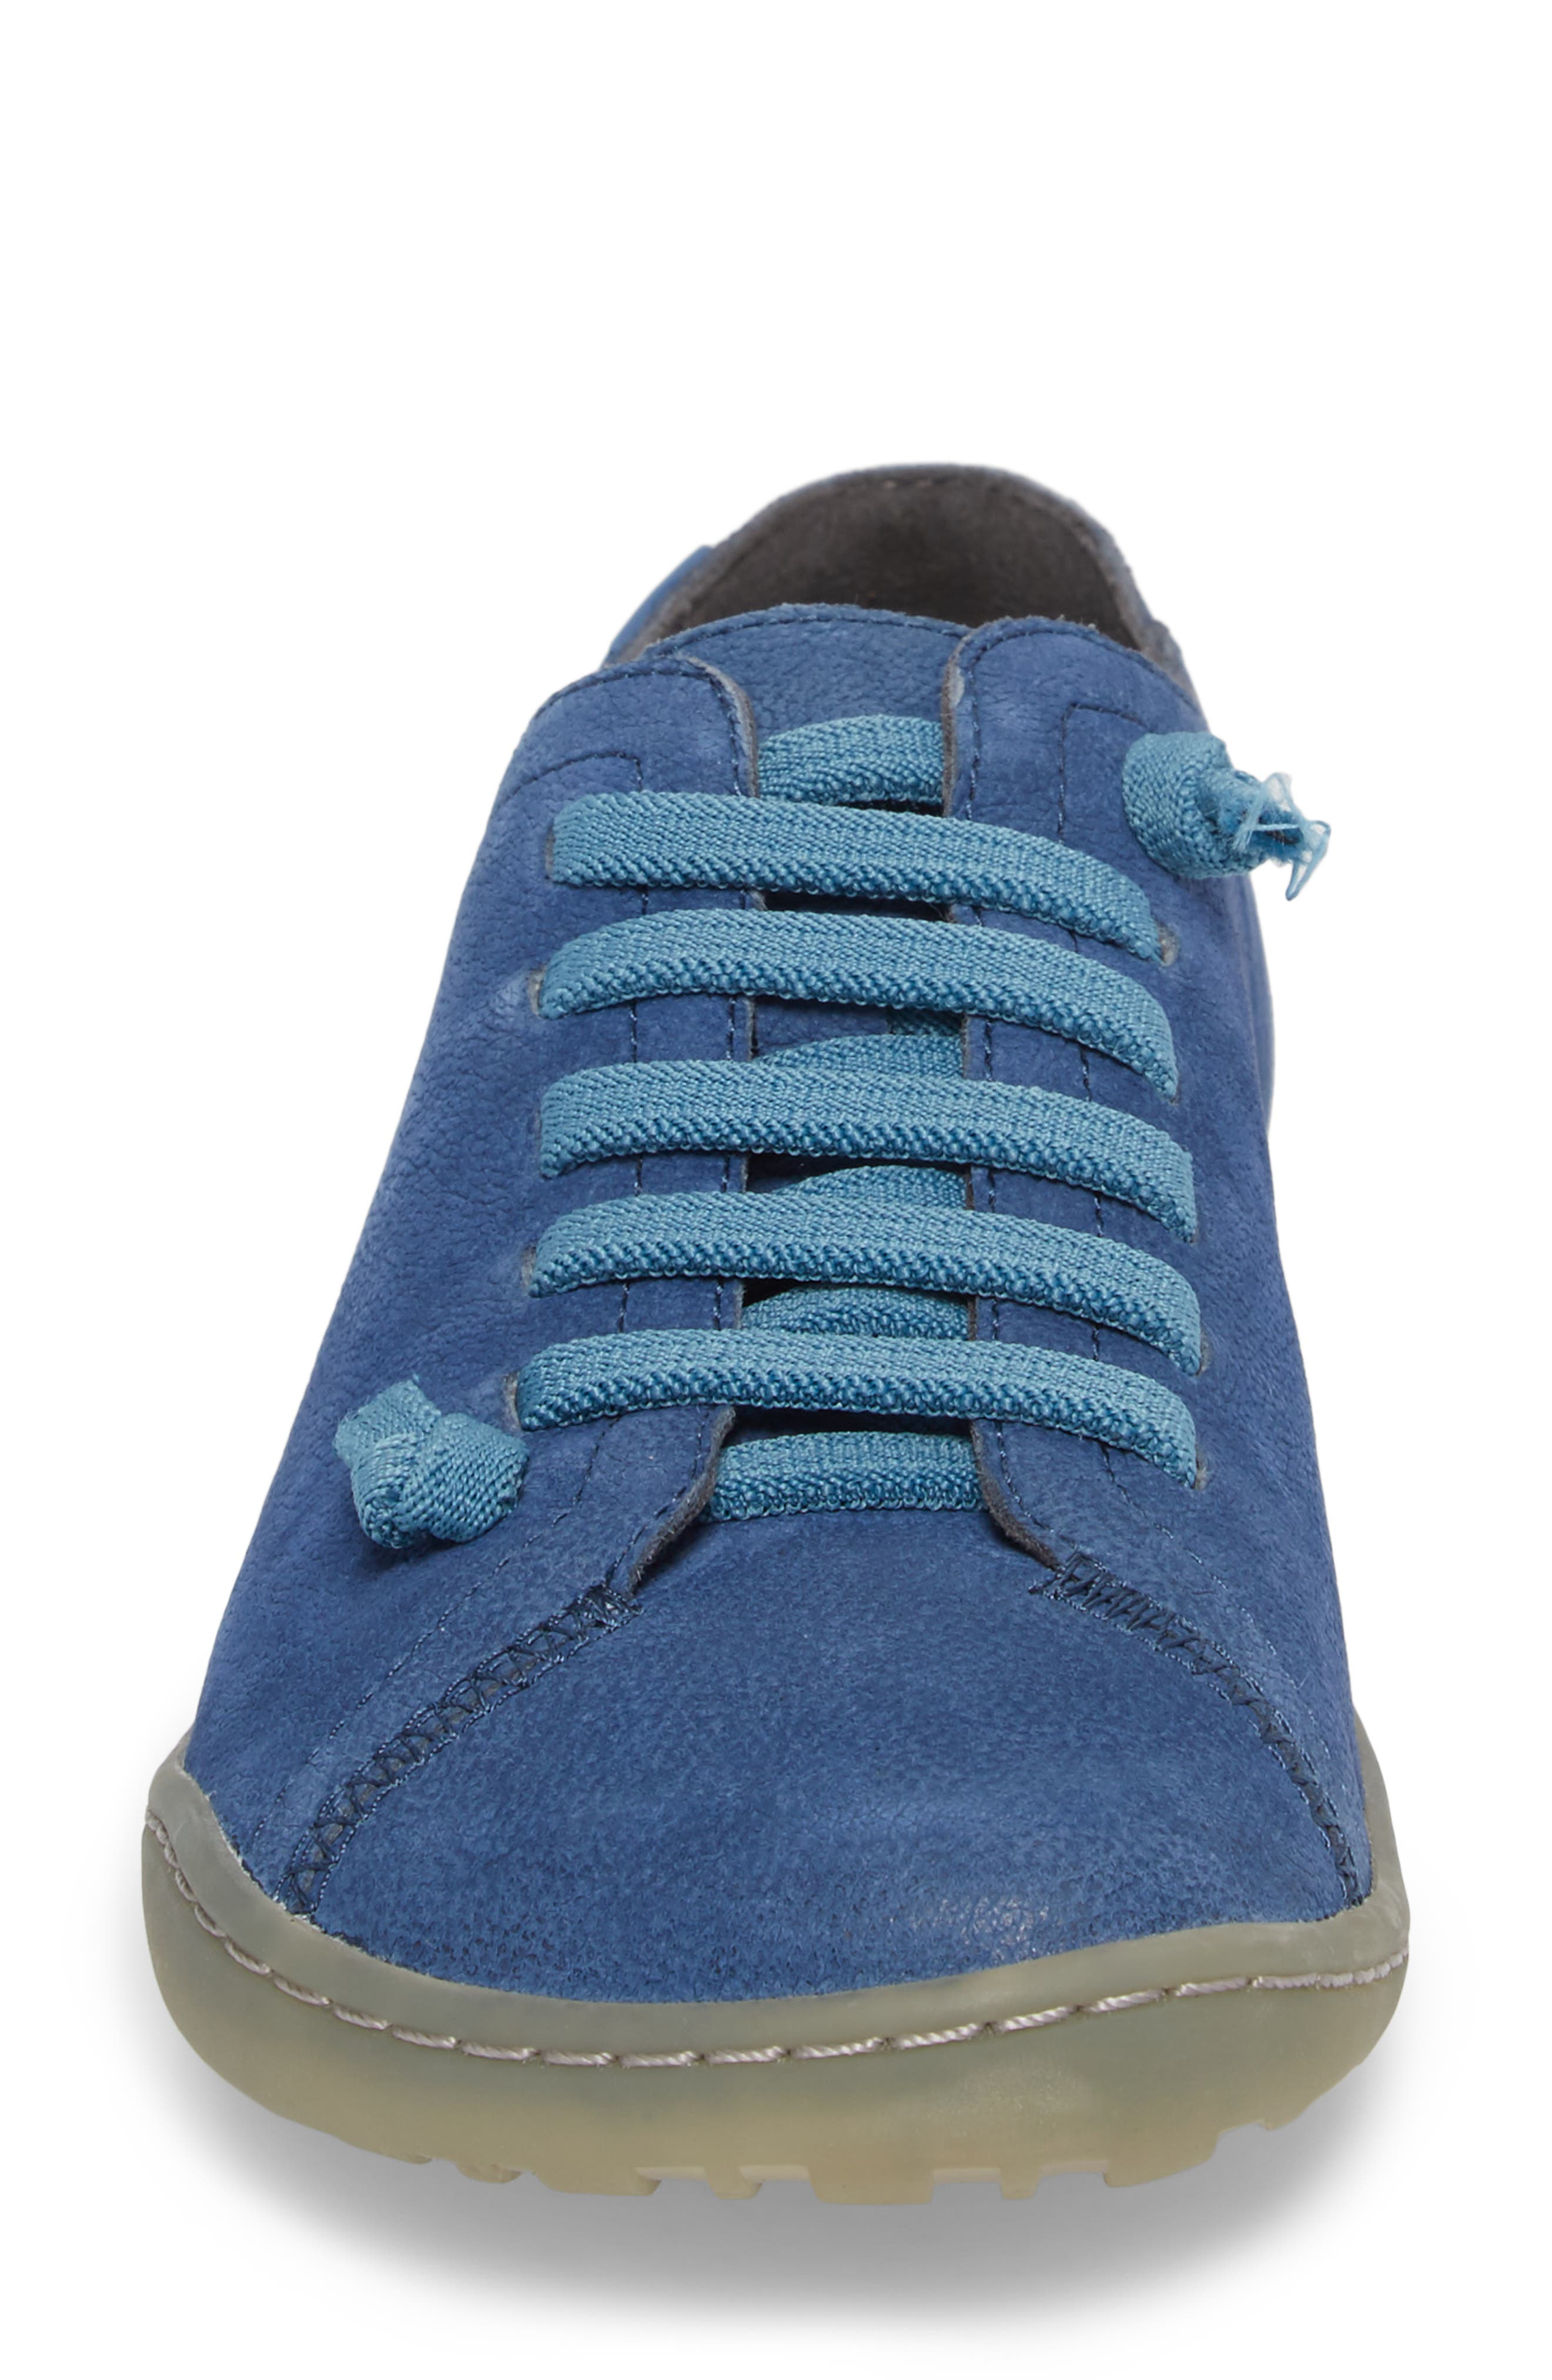 'Peu Cami' Leather Sneaker,                             Alternate thumbnail 4, color,                             420